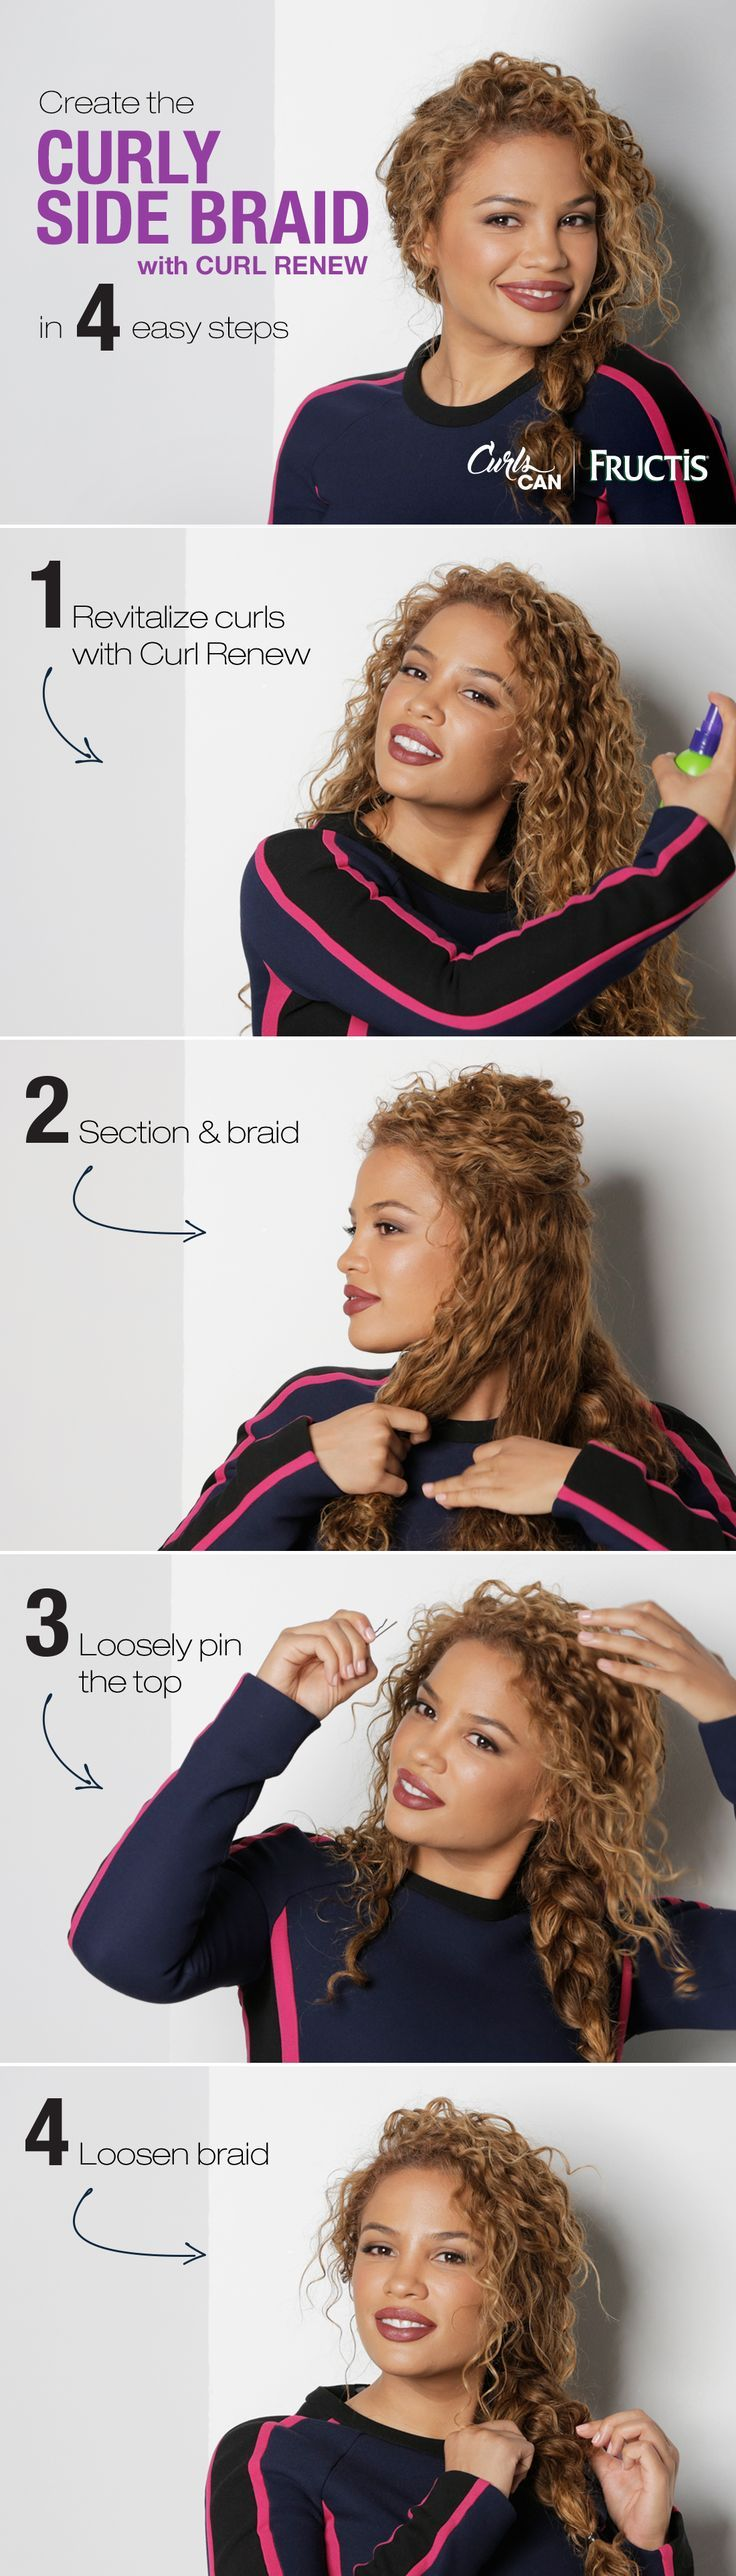 Curly hair is perfect for a messy braid watch andreaus choice